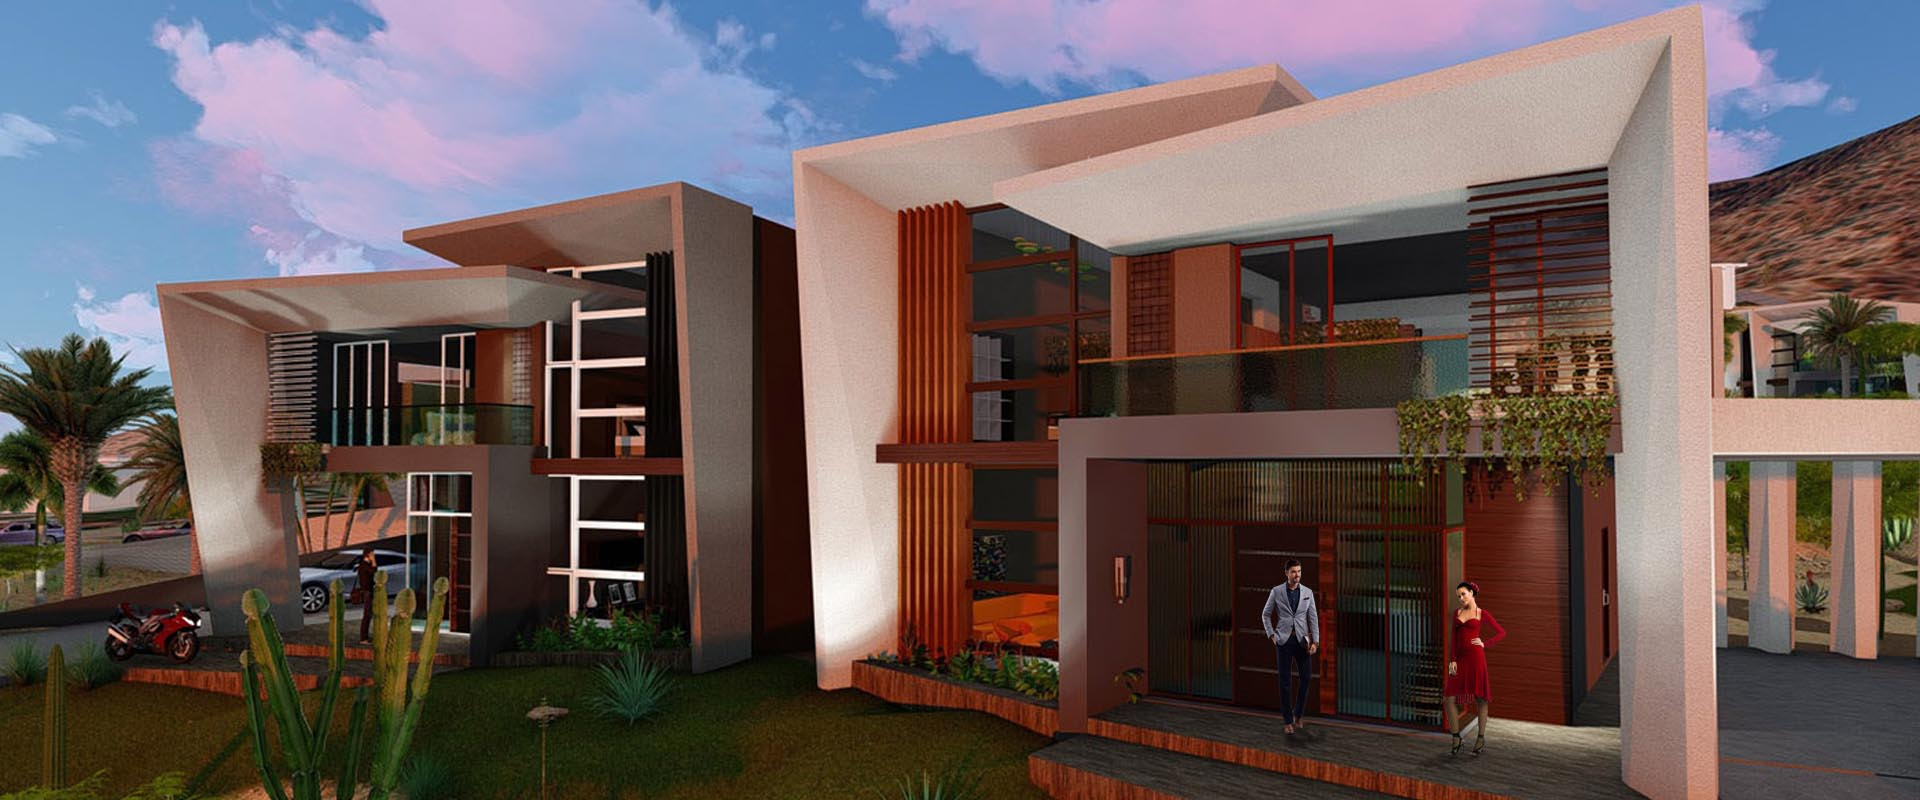 Phoenix_Villa_Community_Residential_Design_SpaceLineDesign.jpg